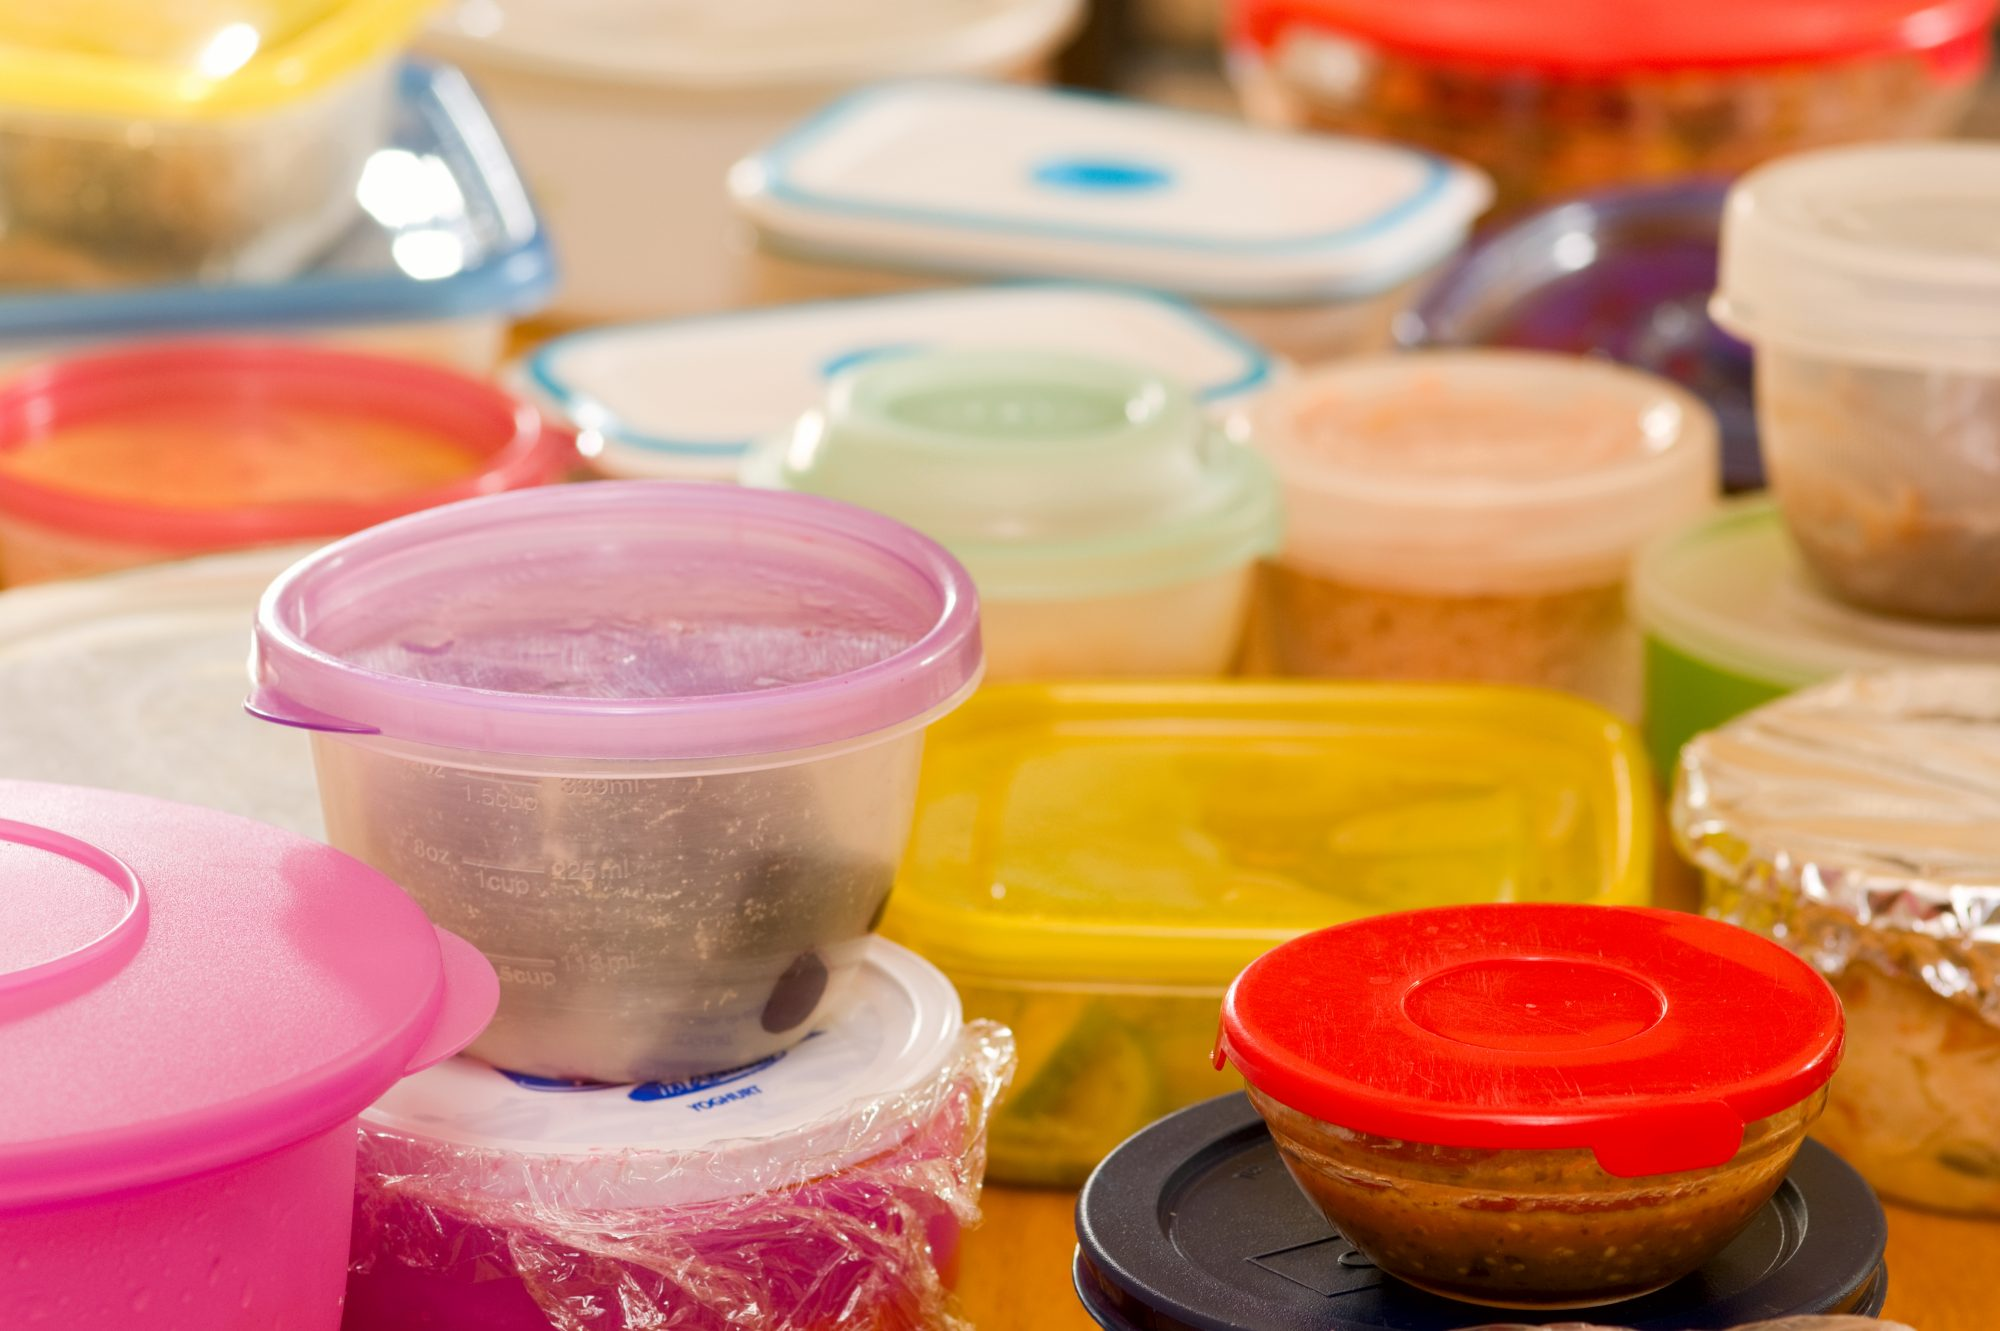 4 Food Storage Products That Could Make Your Food Toxic